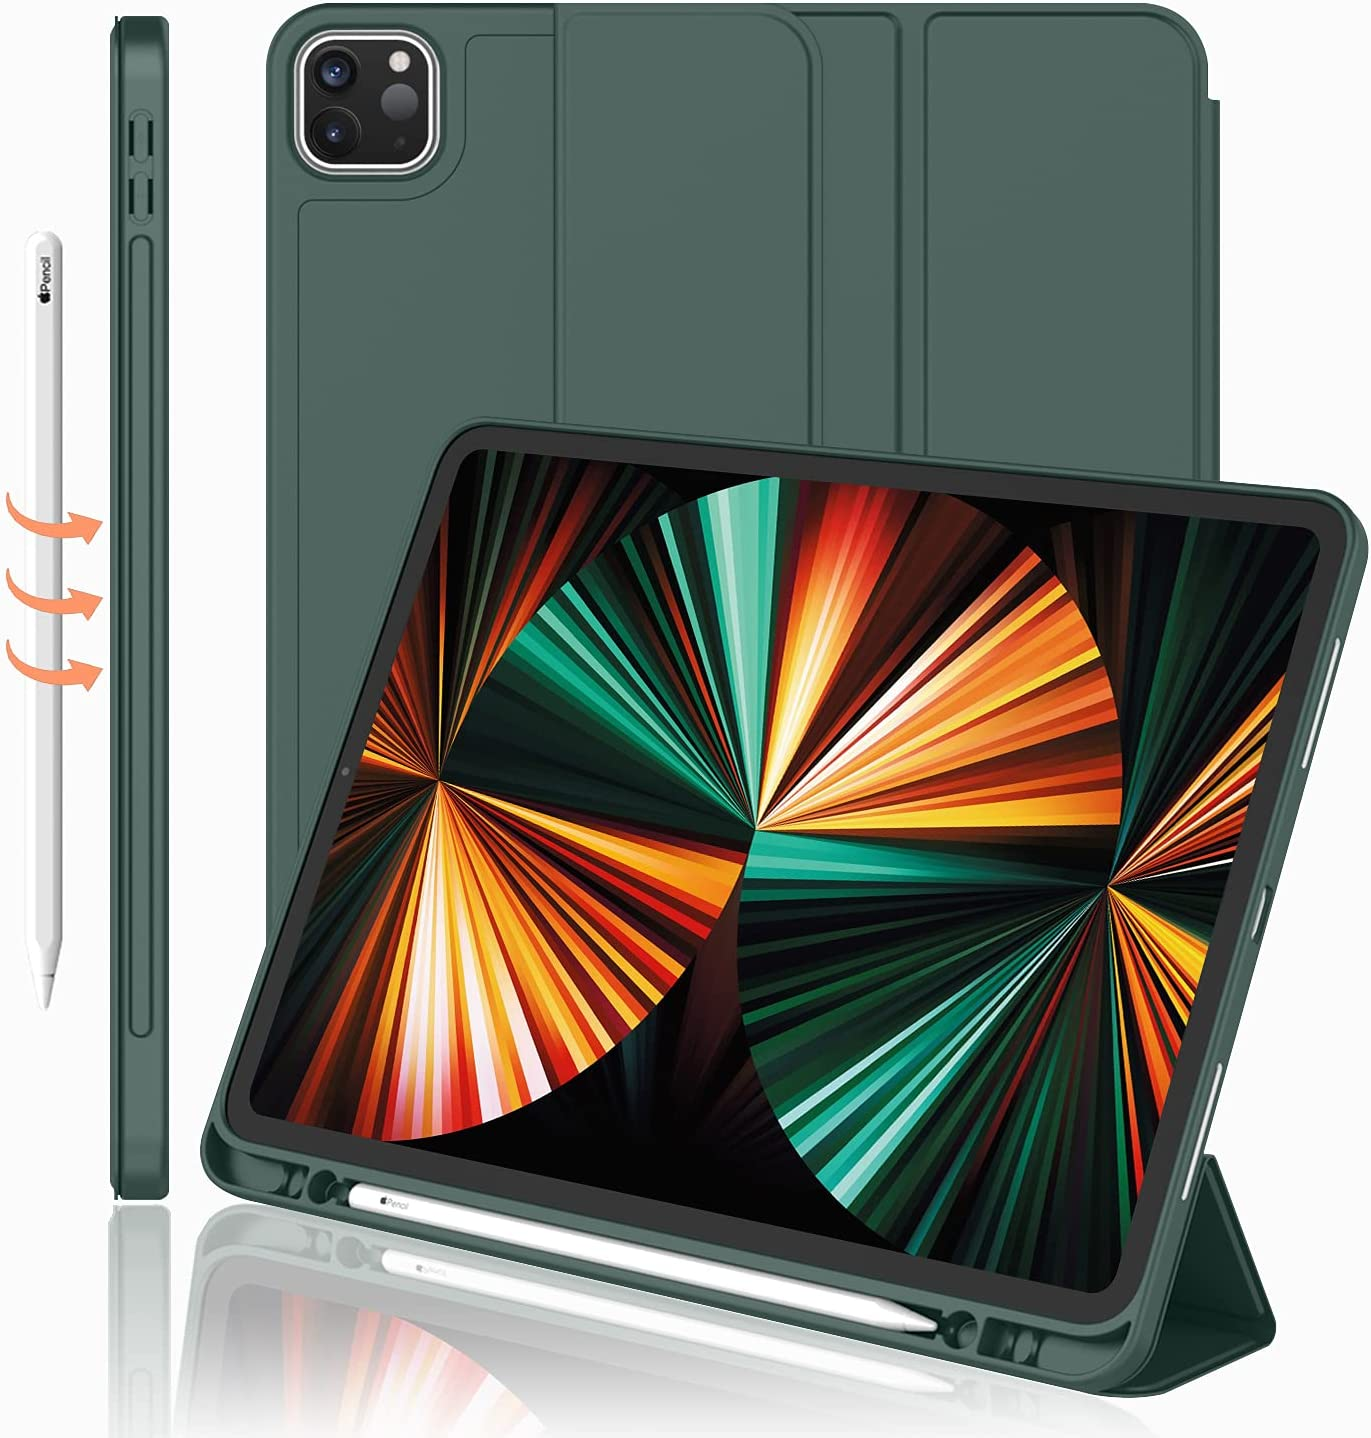 iMieet New iPad Pro 12.9 Case 2021(5th Gen) with Pencil Holder [Support iPad 2nd Pencil Charging/Pair],Trifold Stand Smart Case with Soft TPU Back,Auto Wake/Sleep(Midnight Green)